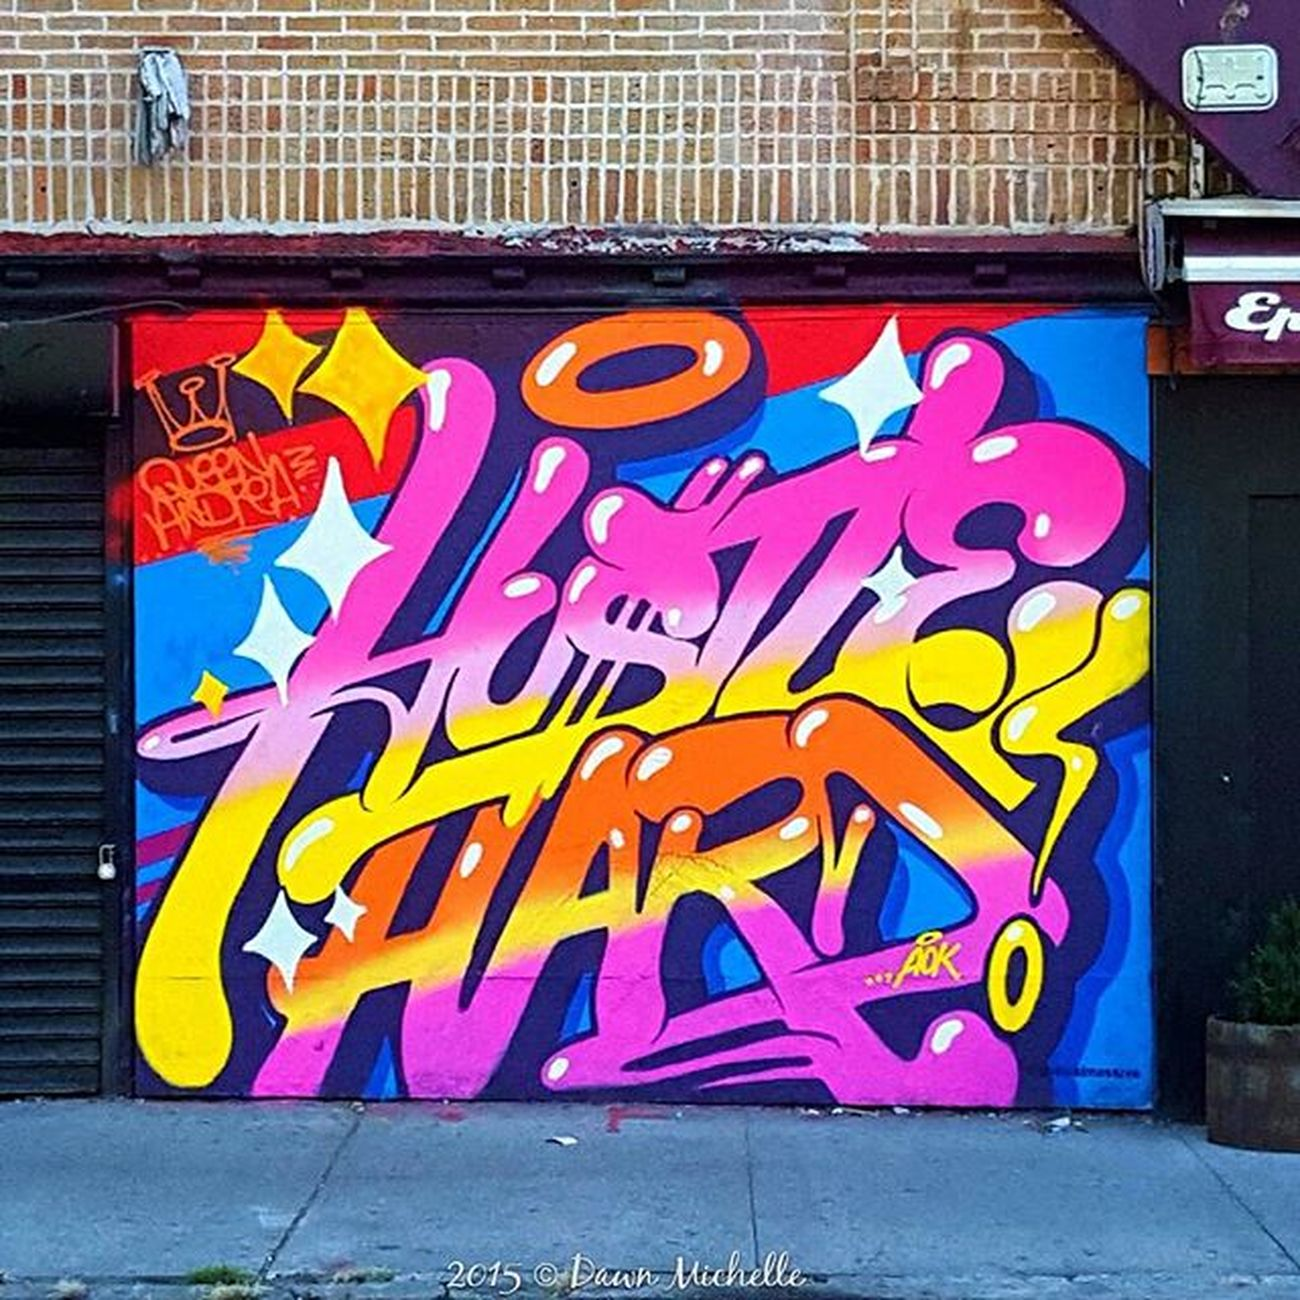 Hustle Hard by @QueenAndreaOne in LES. DopeShotBro DSB_GRAFF Rsa_graffiti Nycprime_ladies Nycprimeshot Icapturemobile Ig_captures Picoftheday Tag4likes Streetart Graff Graffiti Graffitiart StreetArtEverywhere Nycgraff Nycgraffiti Streetartny Instagrafite All_wallshots Streetart_daily Spraydaily Art Arteurbano Splendid_urban Urbanromantix feedissoclean be_one_urbanart queenandreaone typography rawnessofnewyork